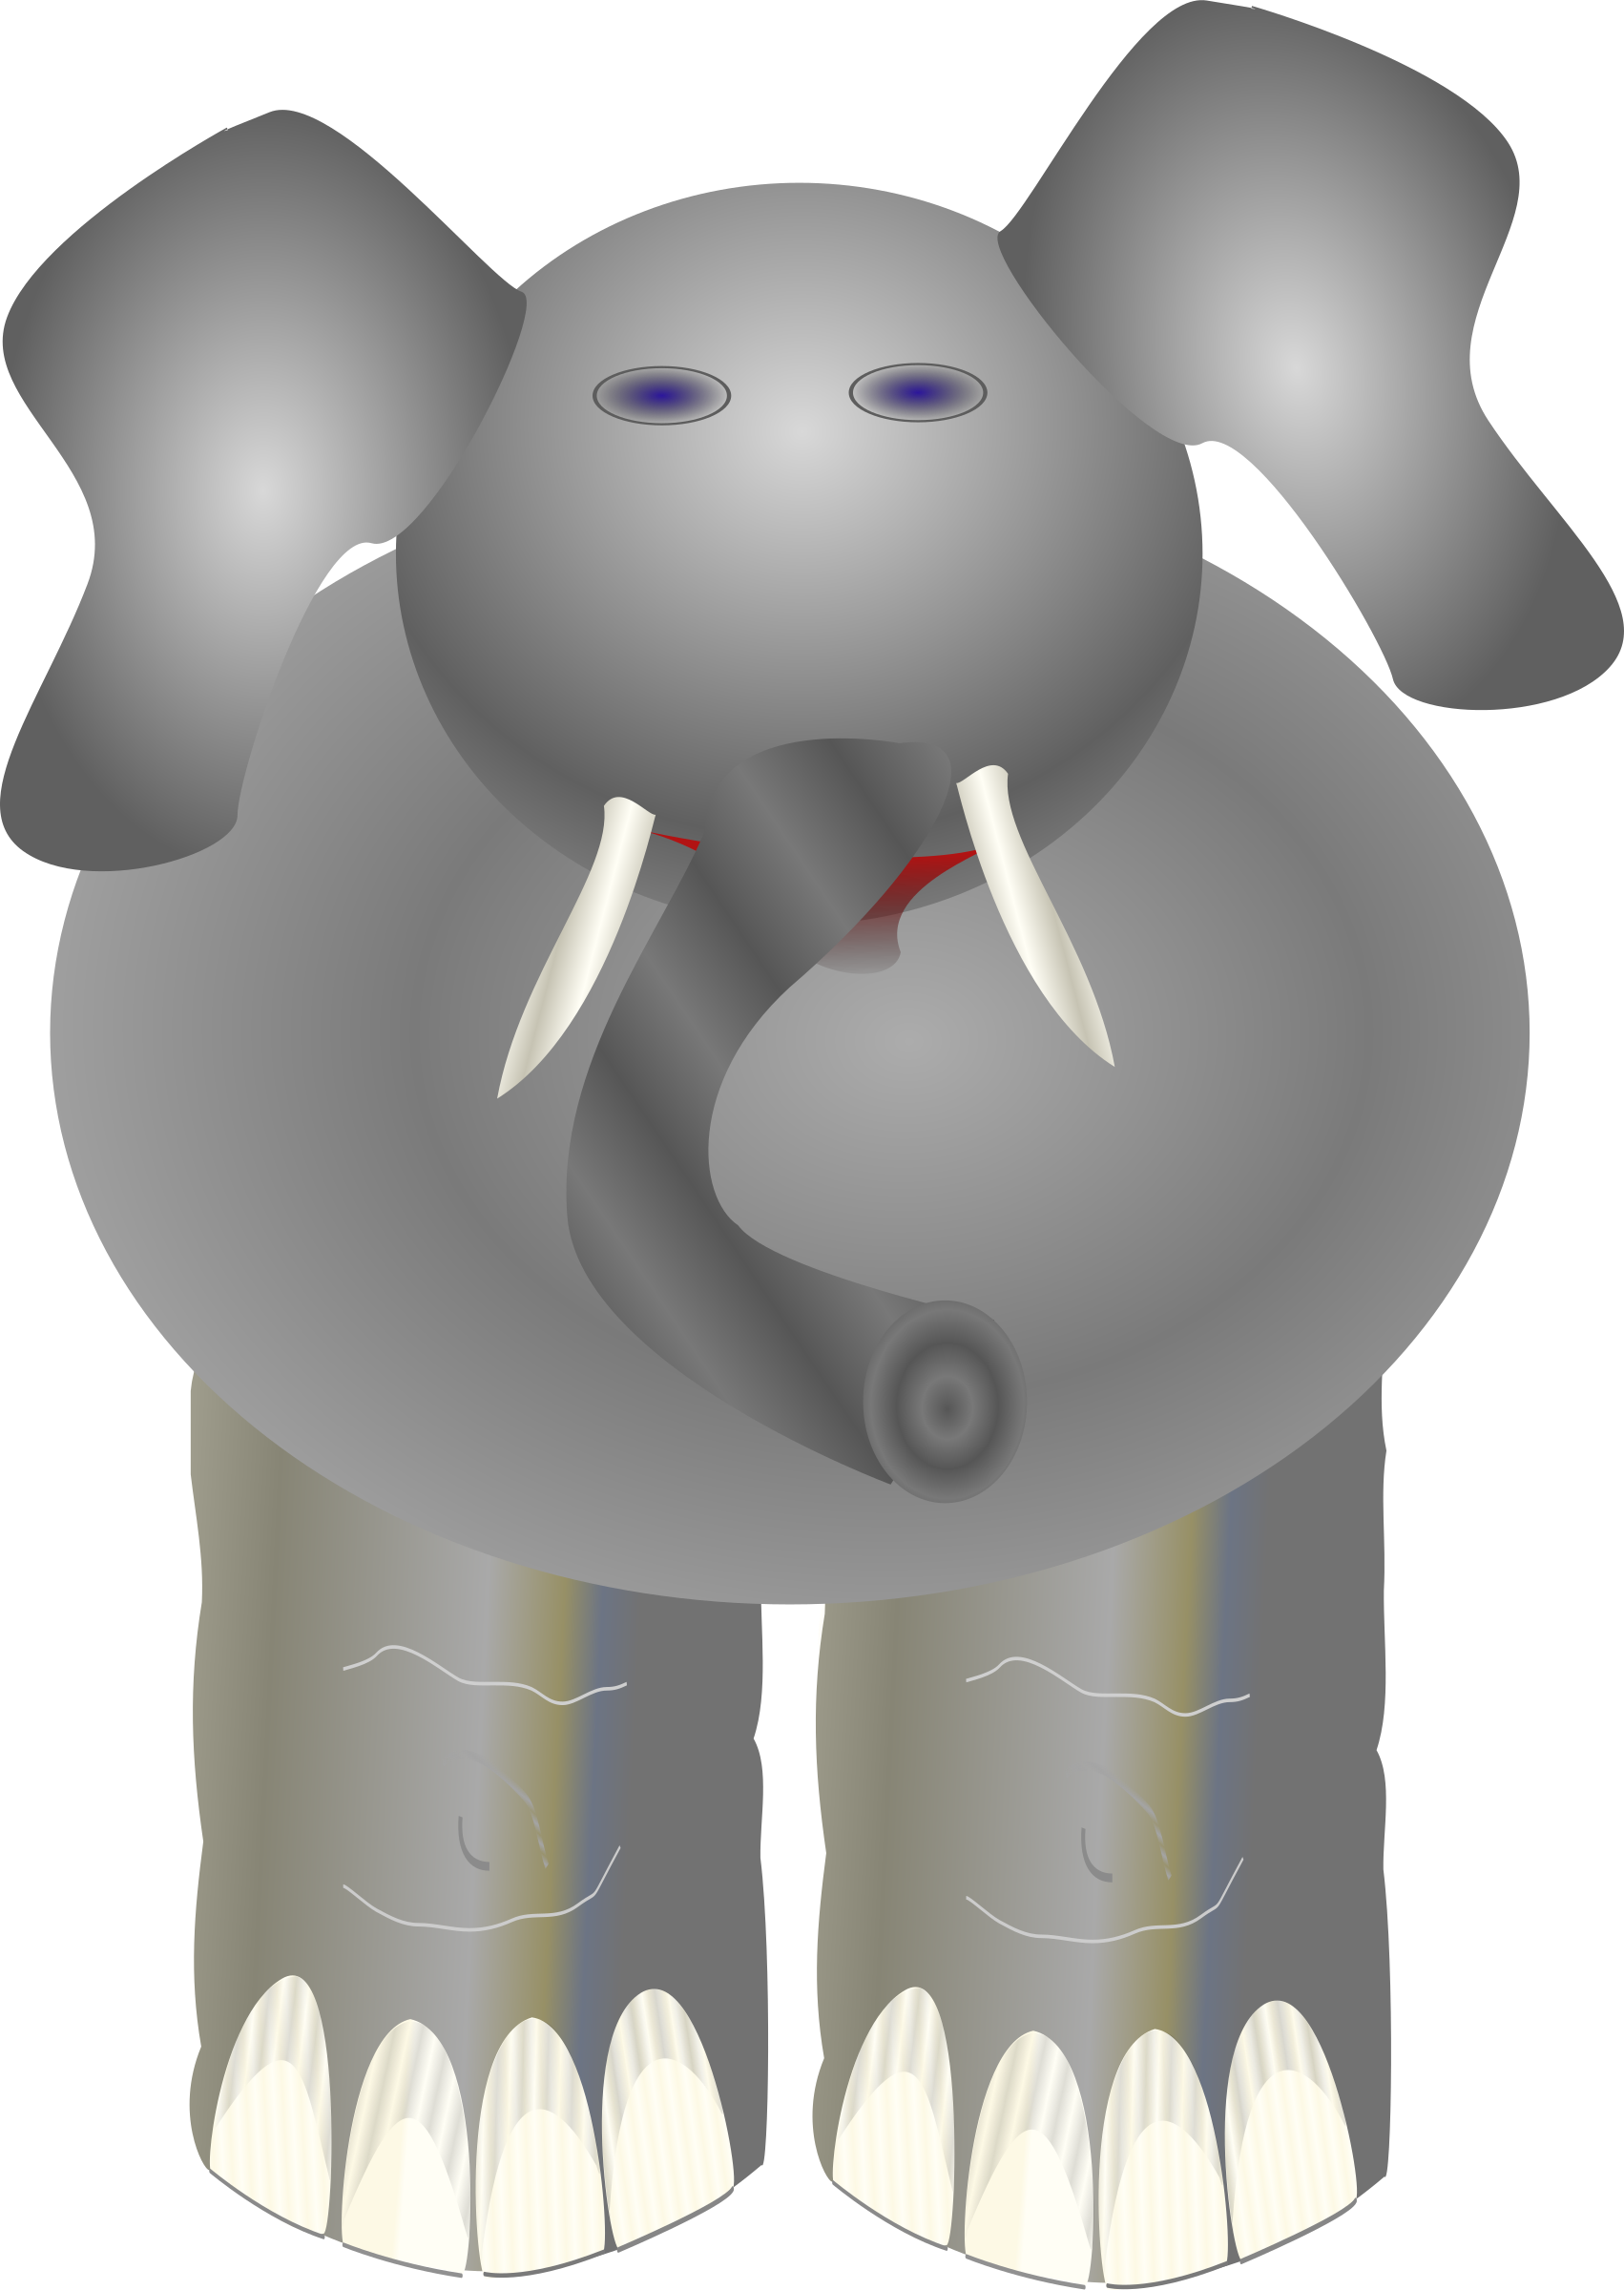 ploppy the elephant by Anonymous